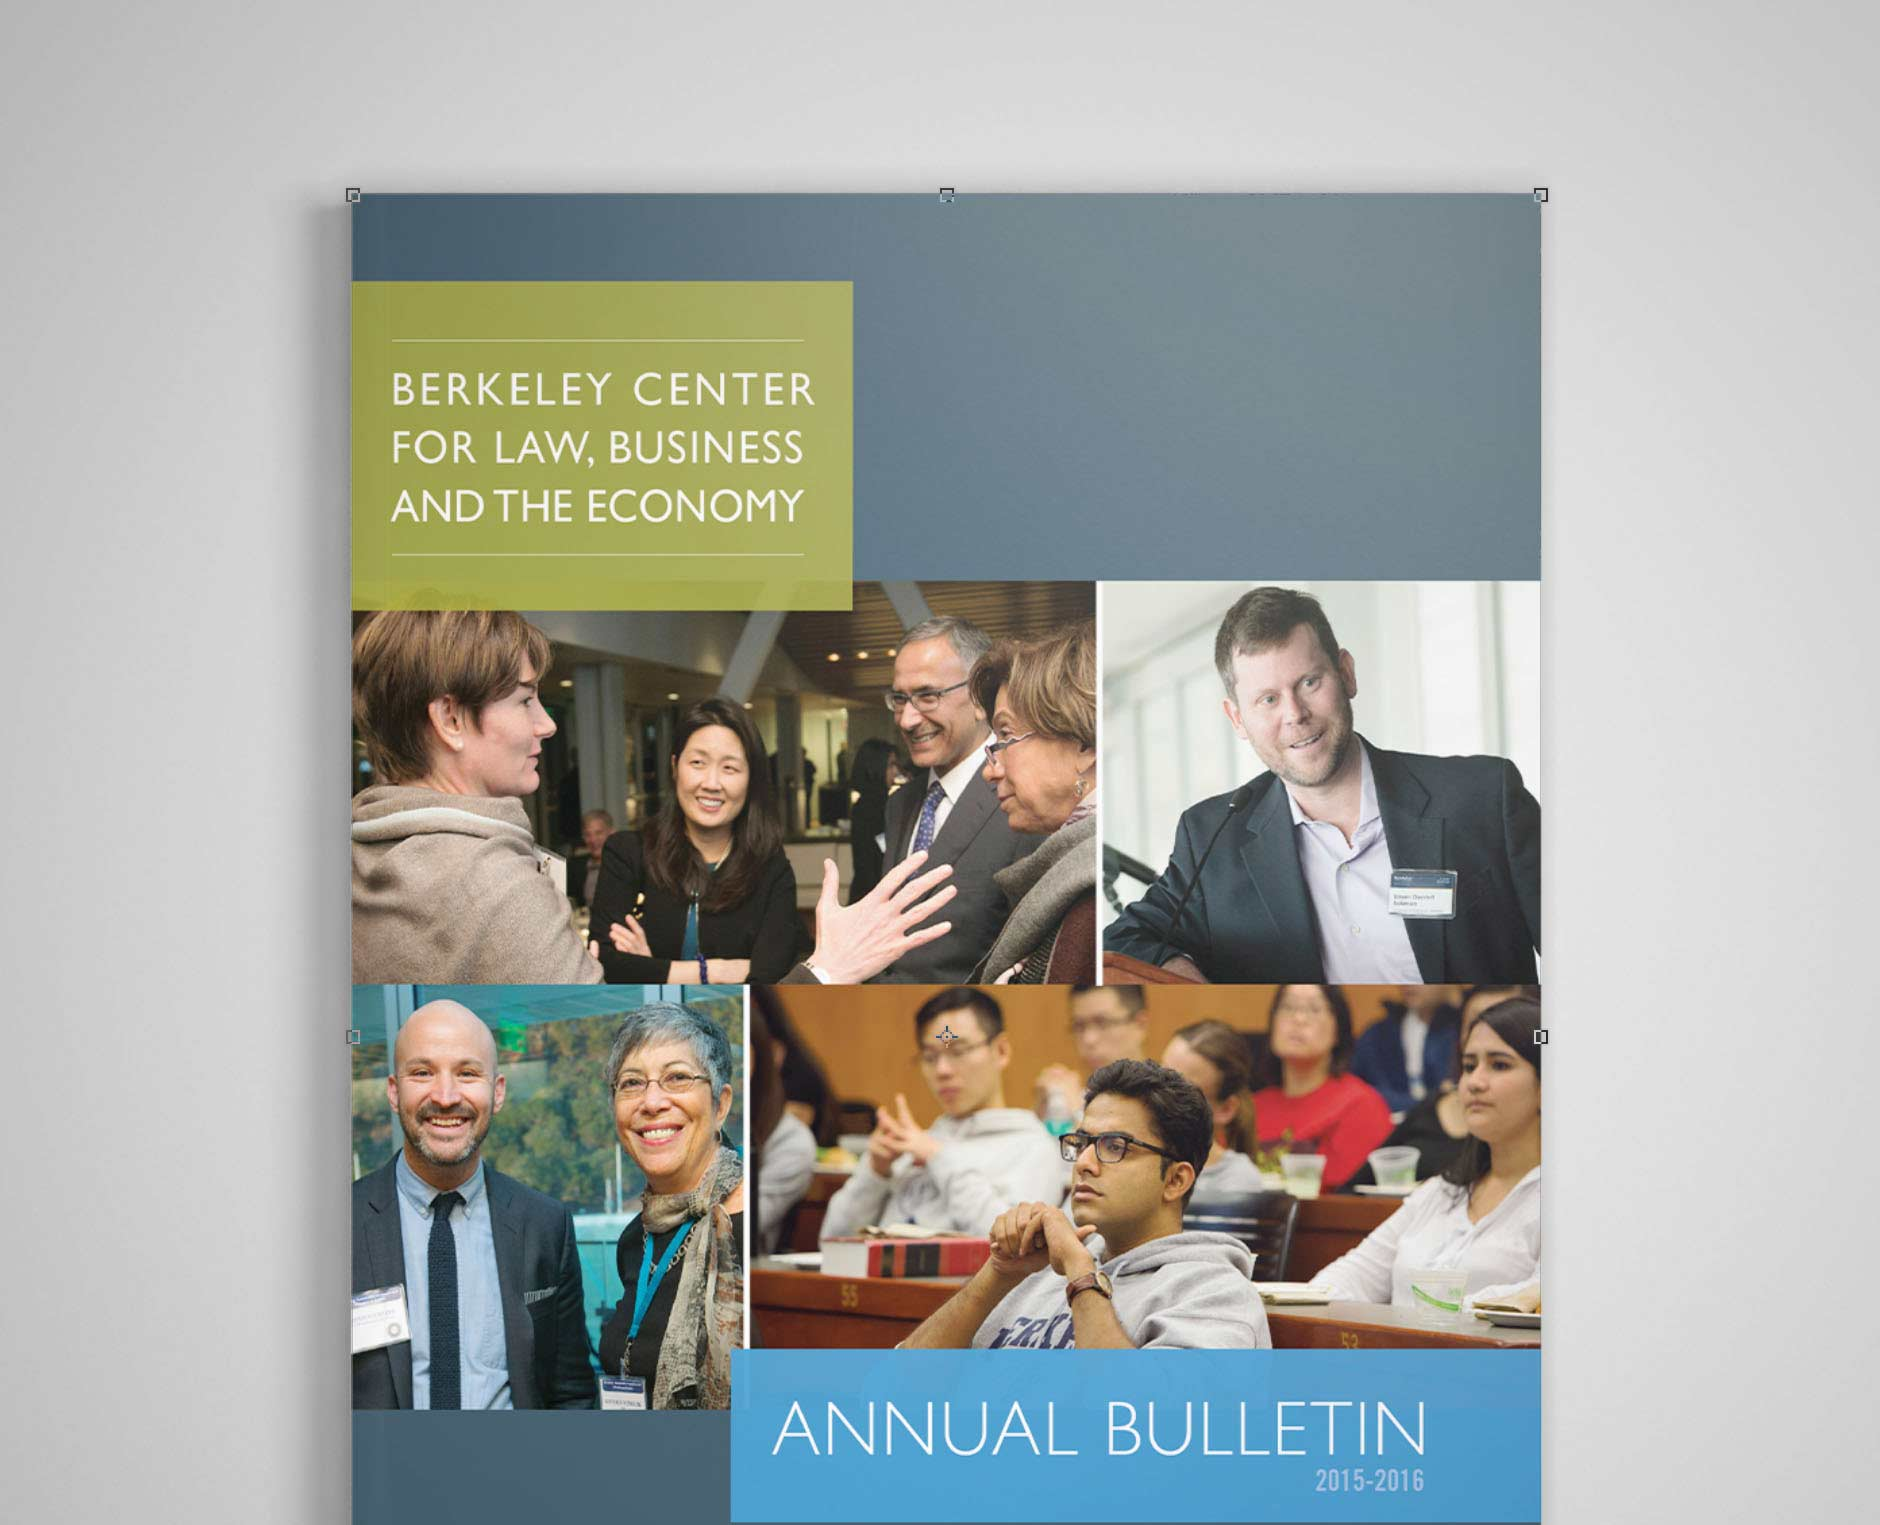 Berkeley Center for Law, Business and the Economy: Annual Bulletin